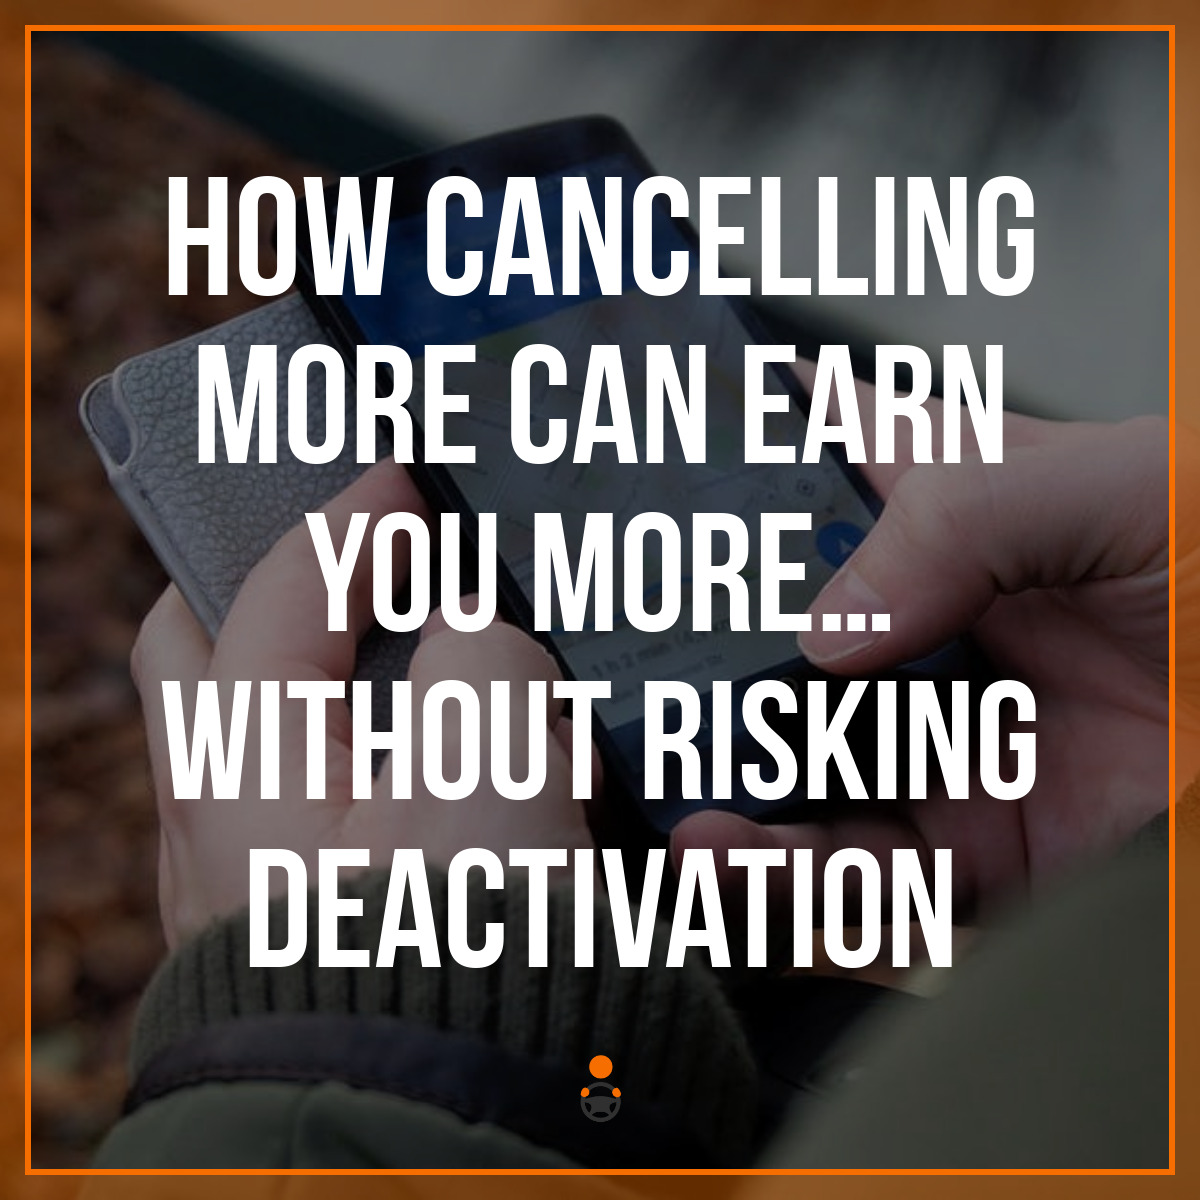 How Cancelling More Can Earn you More… Without Risking Deactivation